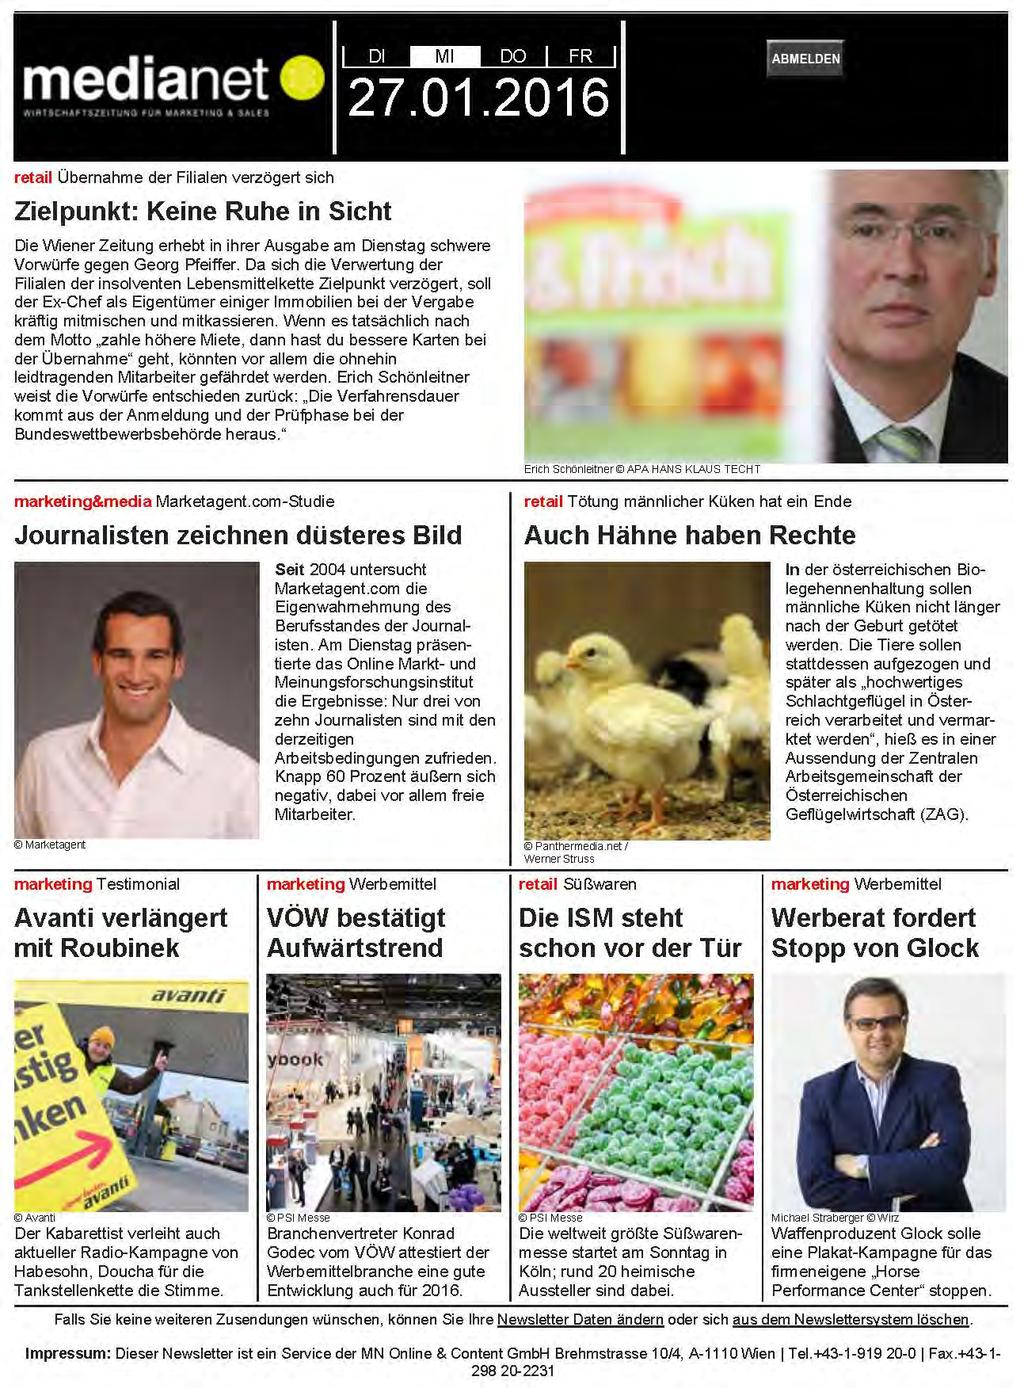 Medium: Medianet Newsletter Quelle: http://cms.medianet.